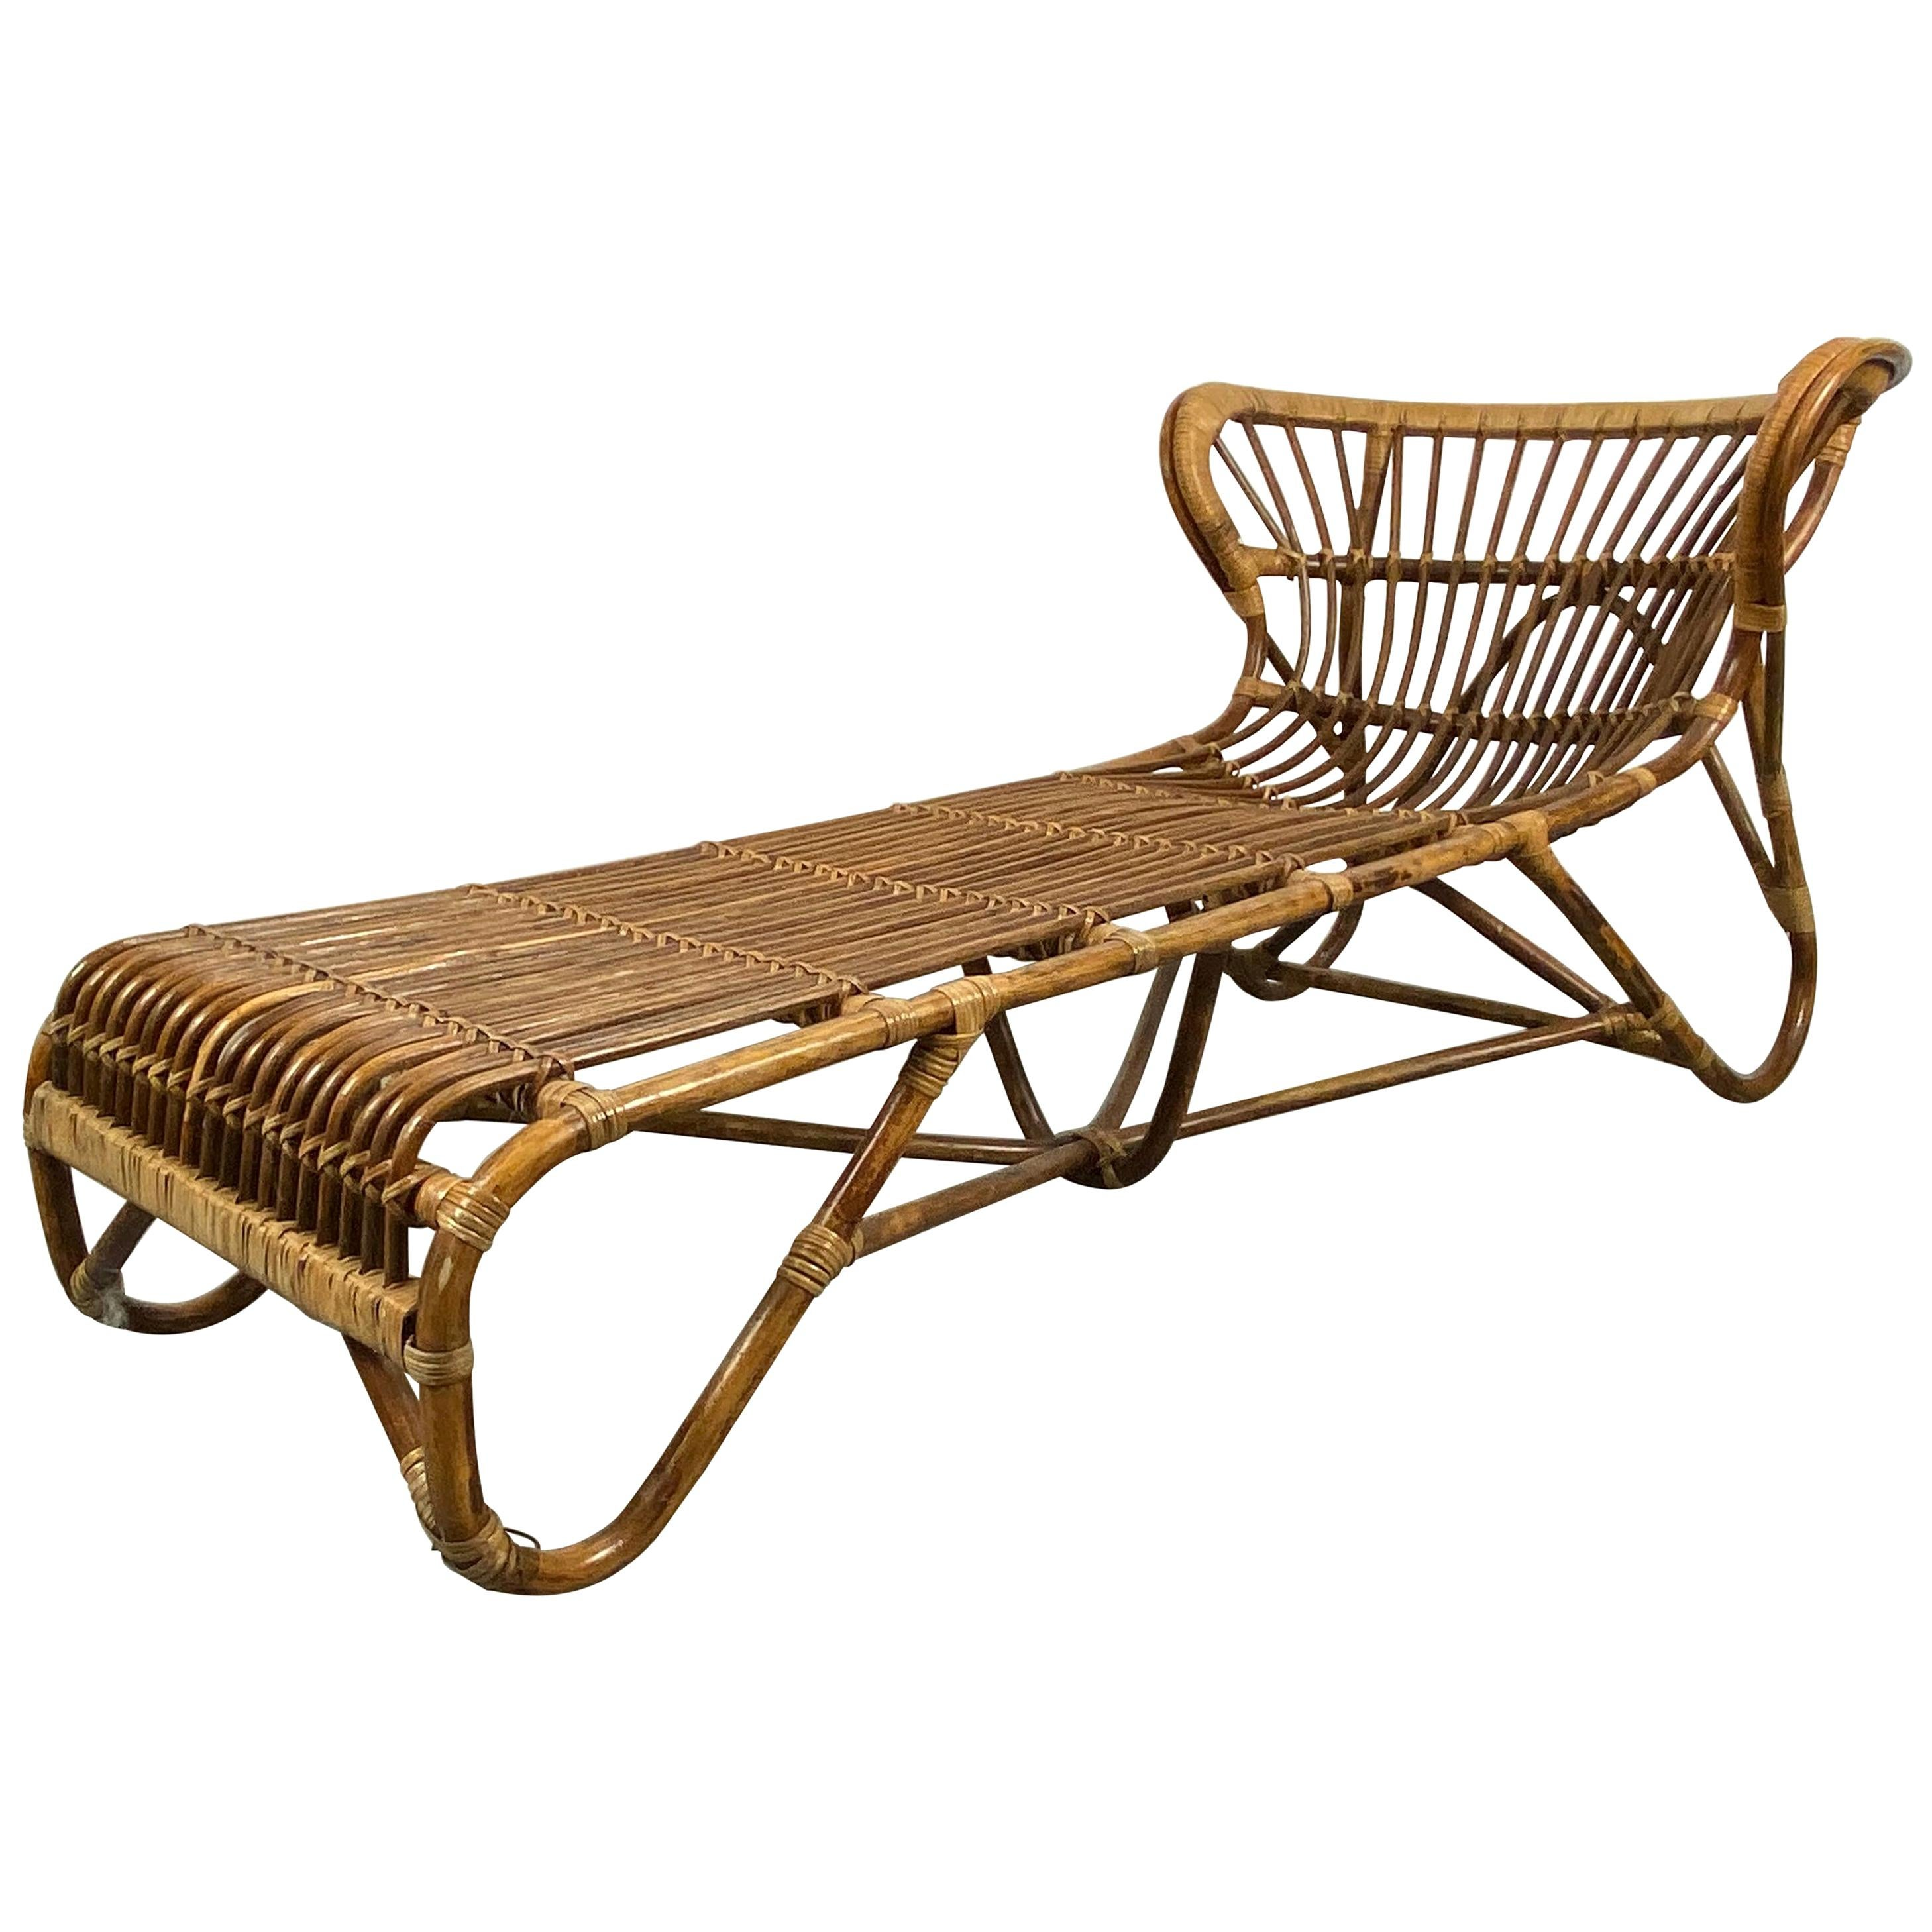 Elusive Bamboo and Rattan Chaise Lounge Attributed to Franco Albini